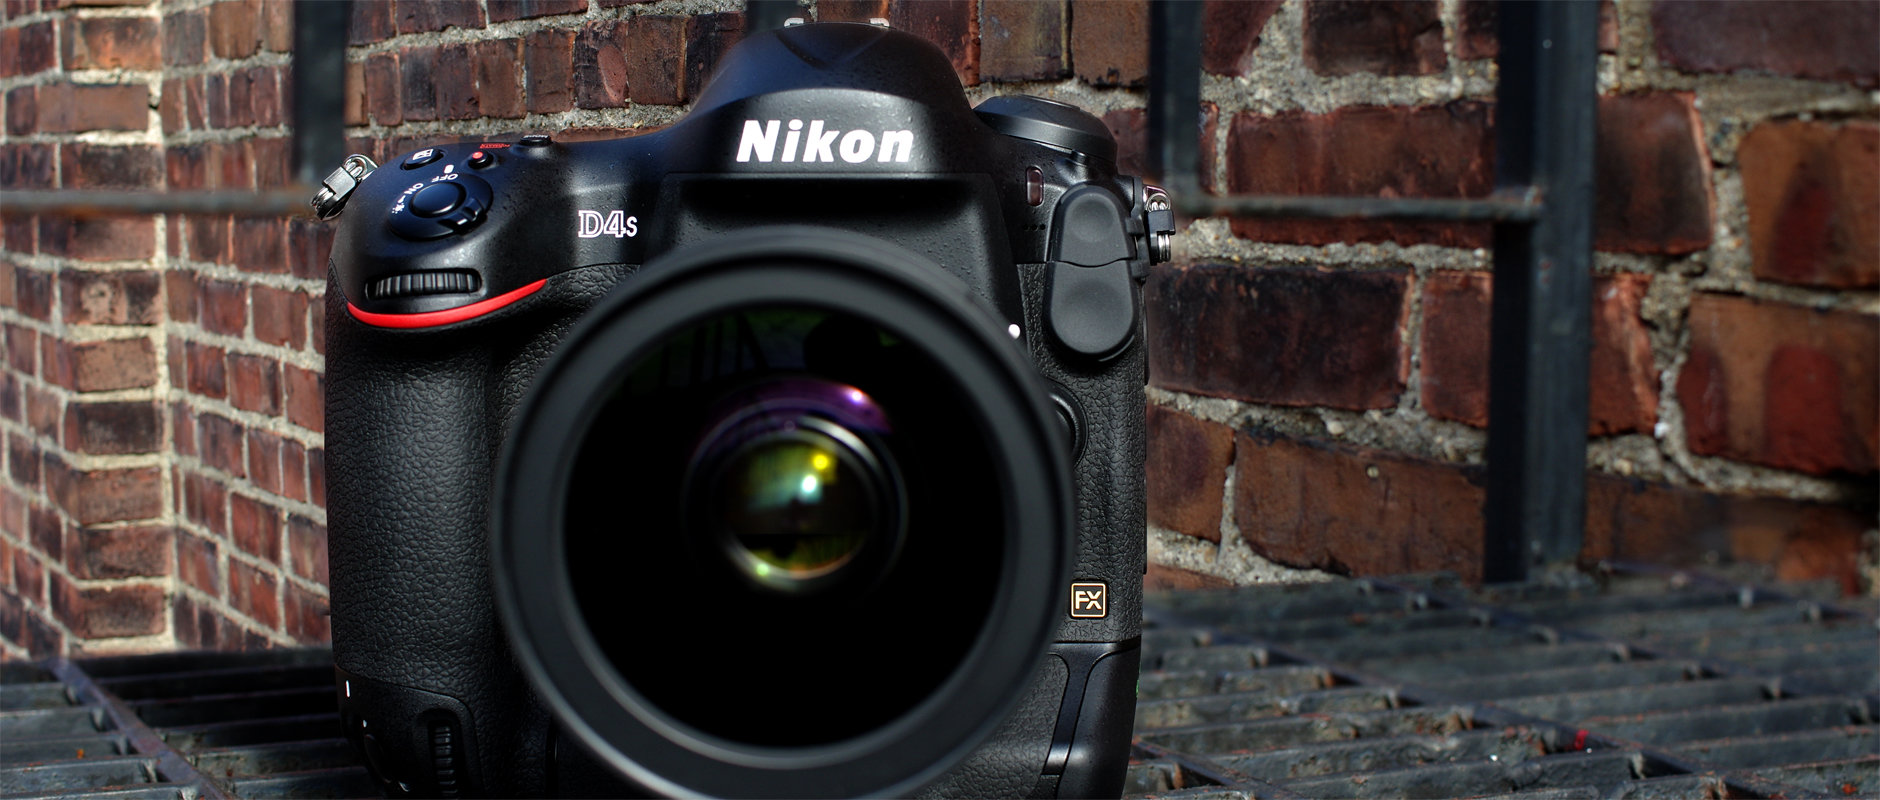 Our Nikon D4S Review didn't quite have everything that we produced about the camera, here is our Nikon D4S sample video shot at ISO 409,600